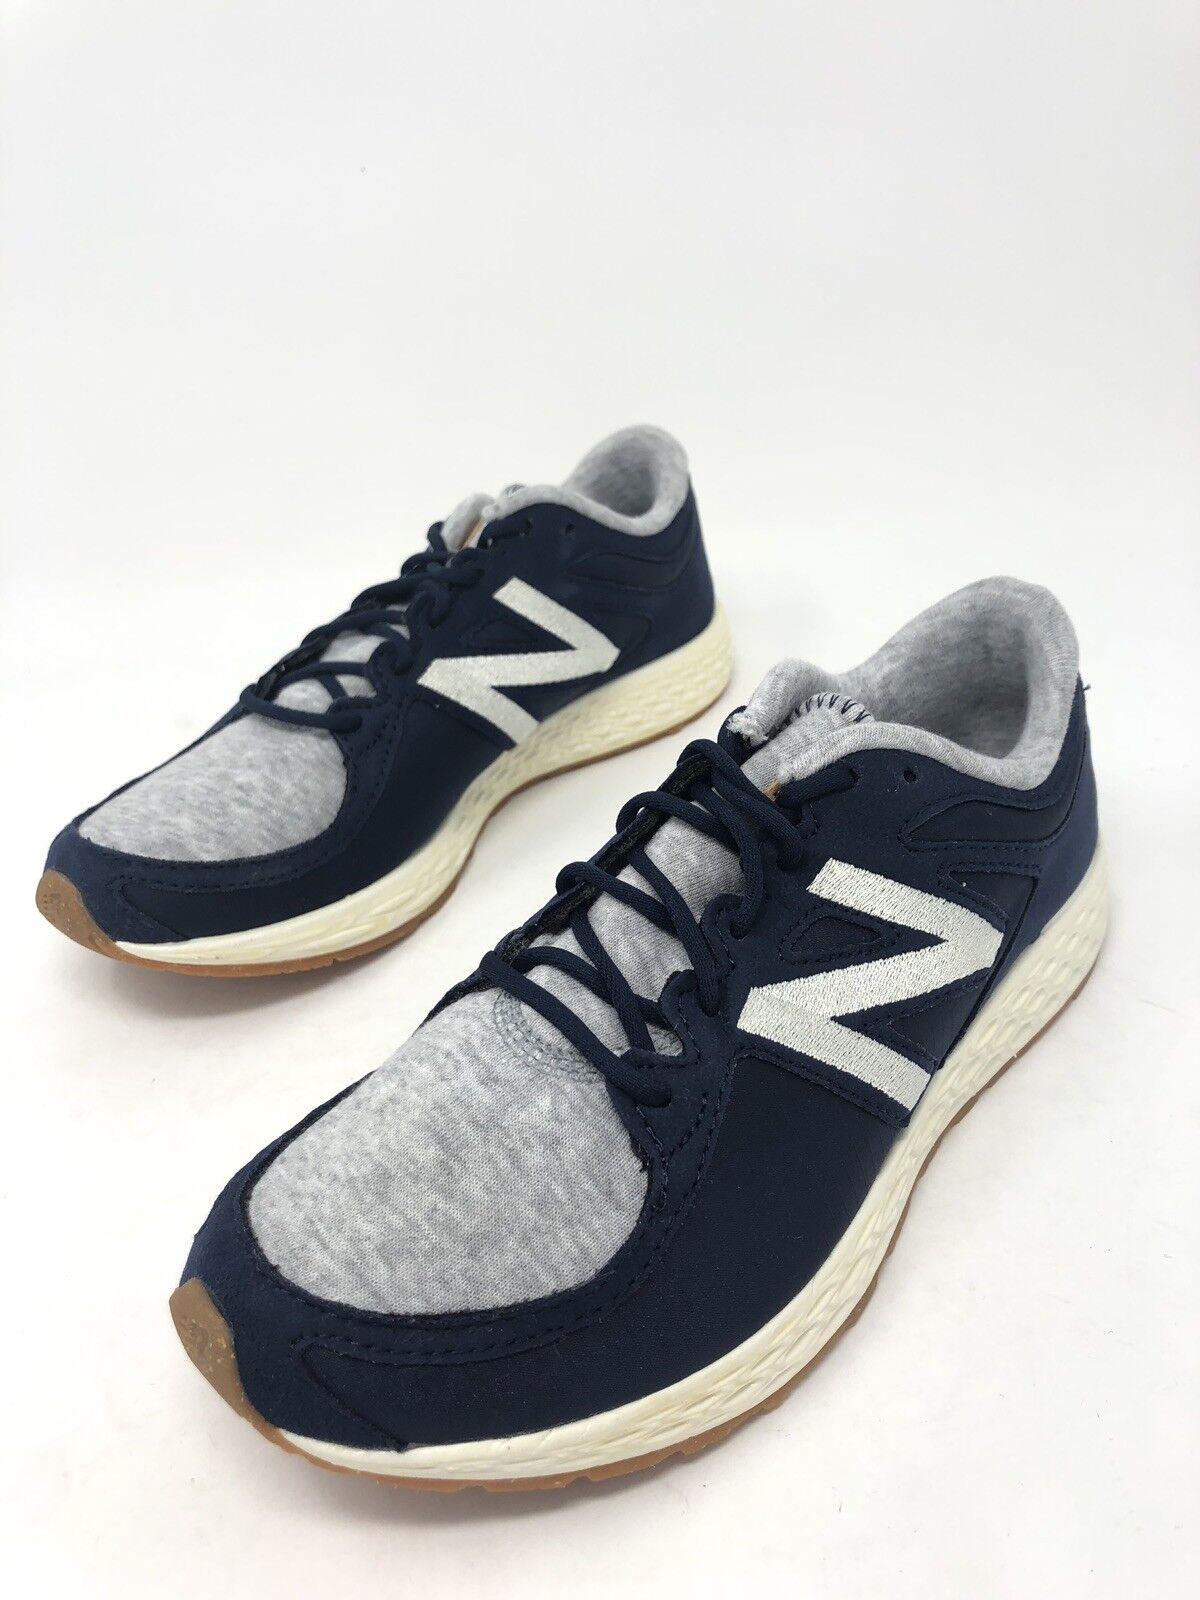 814 New Balance Women's Zante Sportstyle shoes, Navy Grey, Size 7 Medium